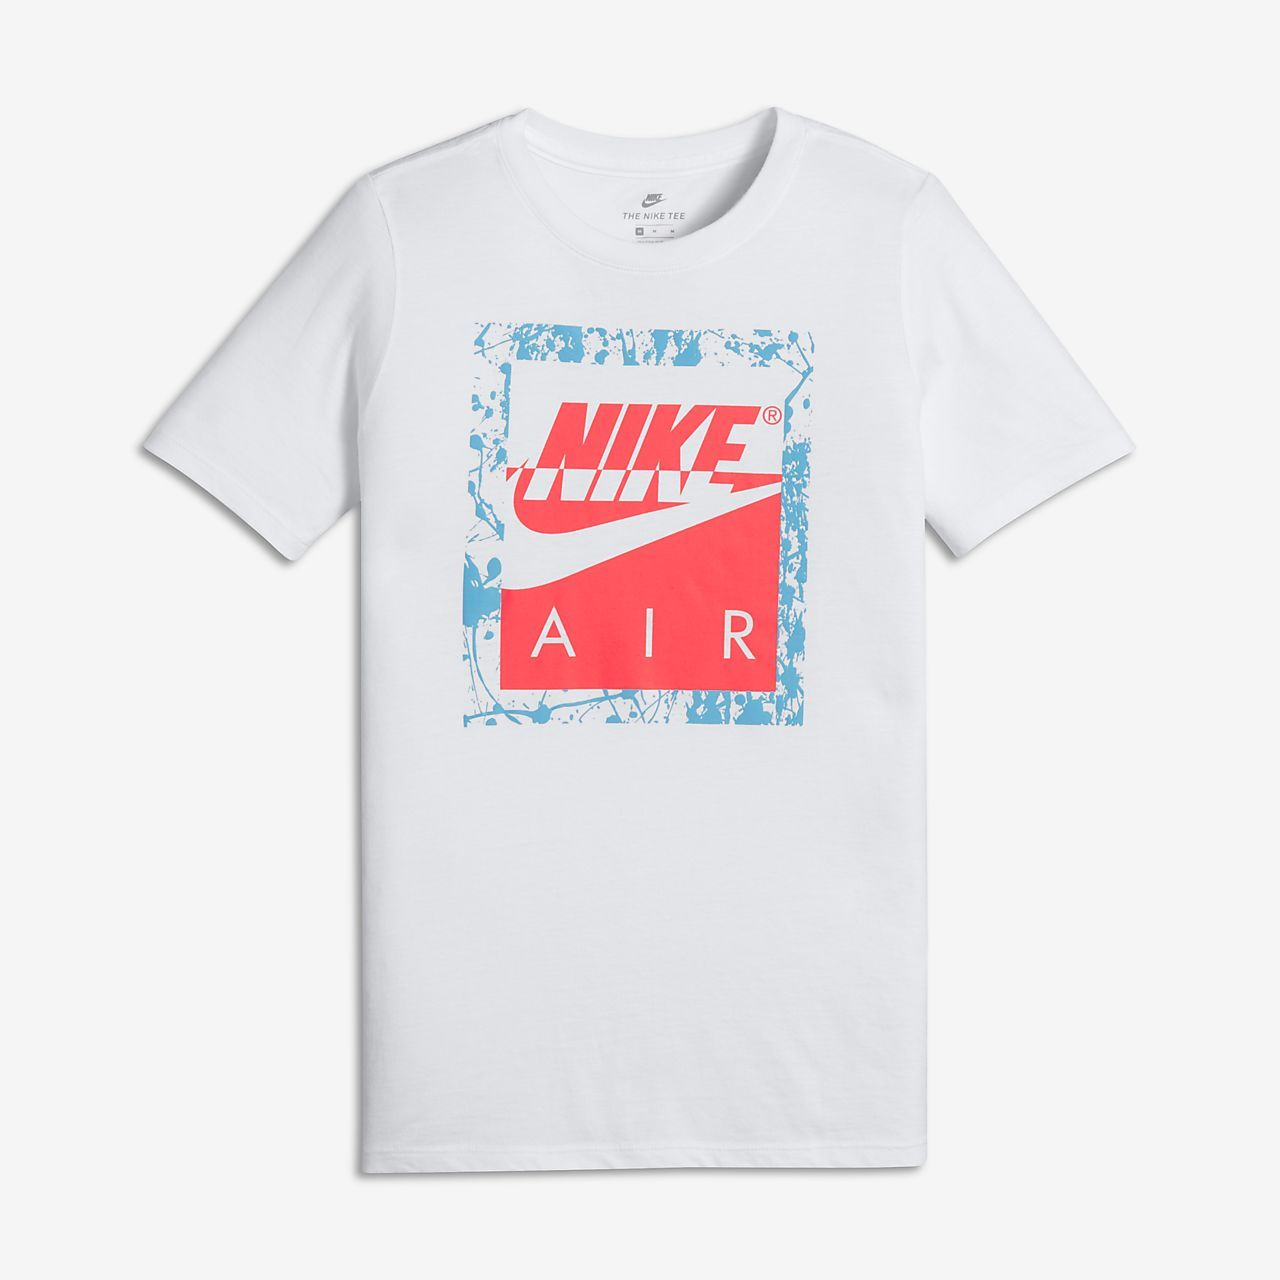 165a345b Nike Sportswear Older Kids' (Boys') T-Shirt | What i want when I'm ...